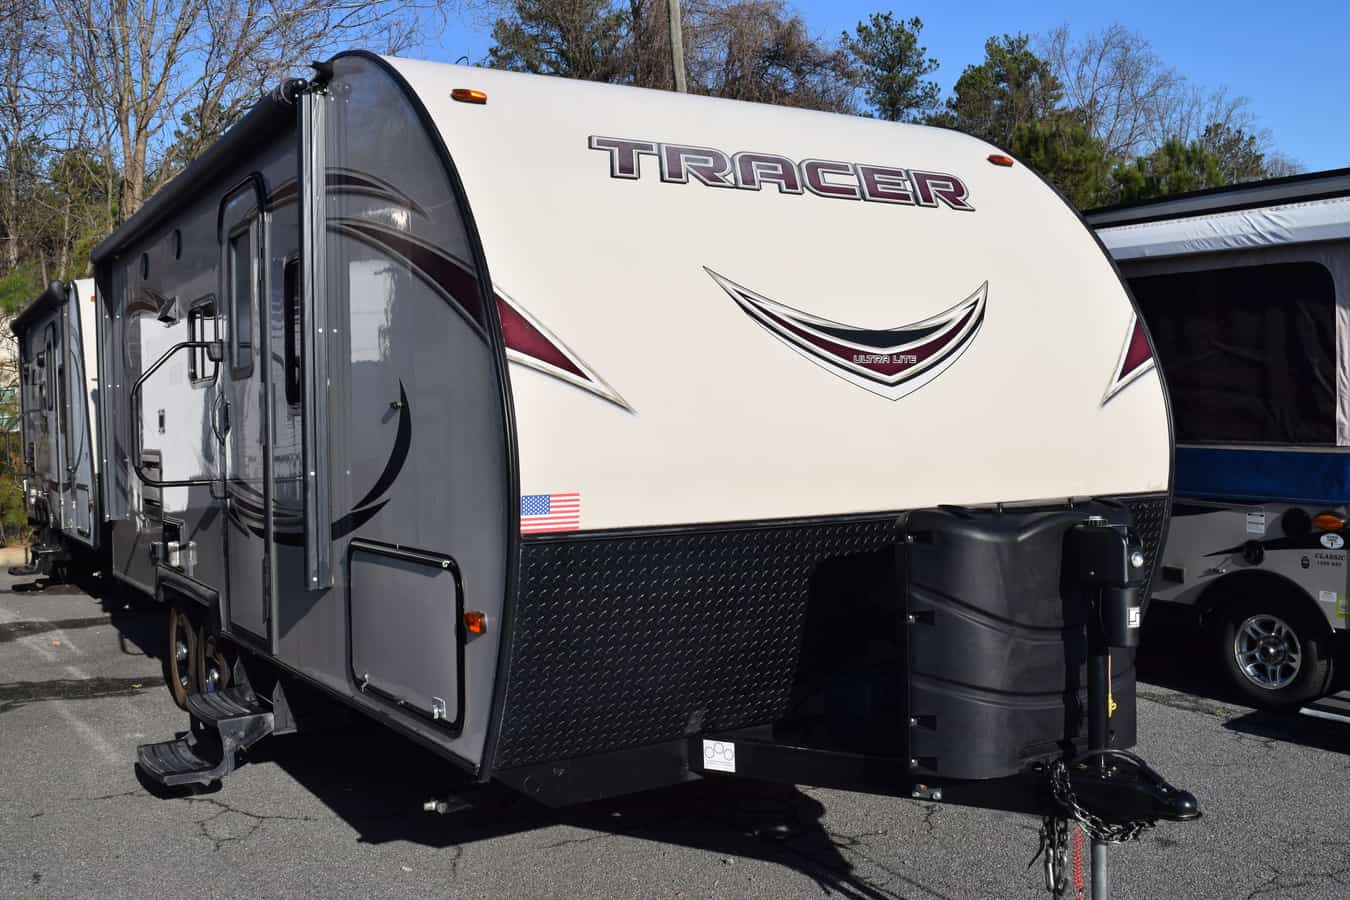 USED 2016 Prime Time TRACER 215 AIR - Three Way Campers